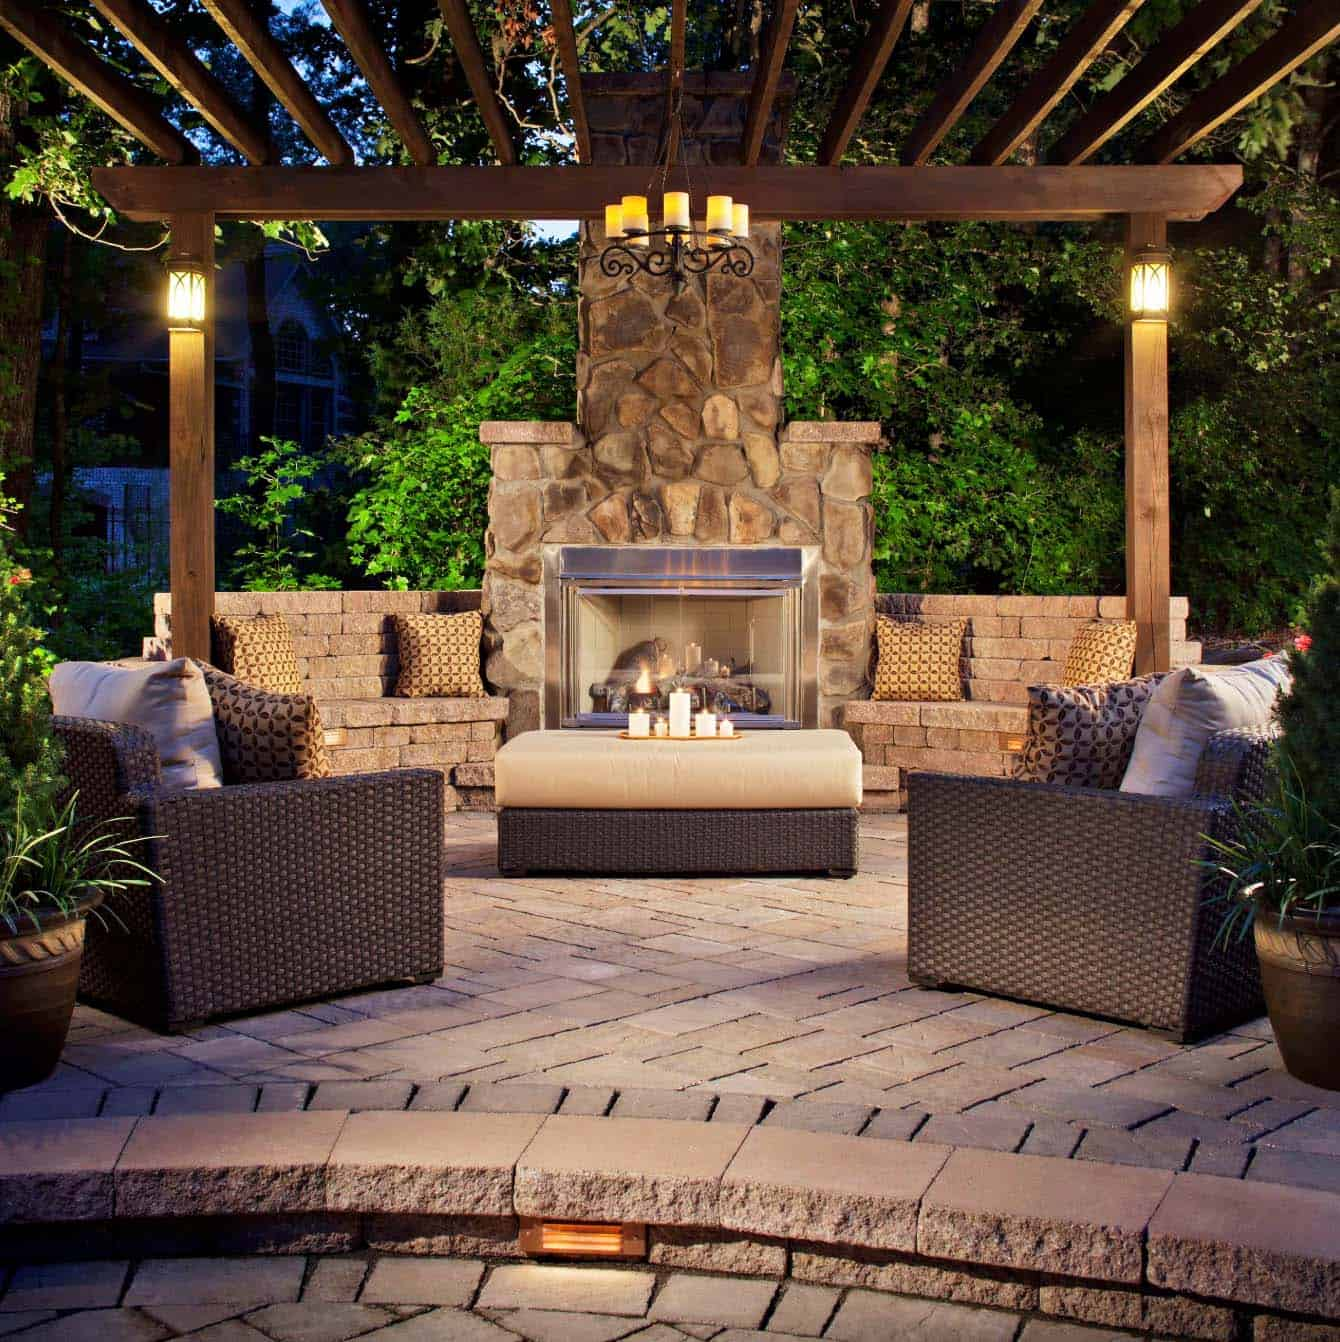 20 Amazing Pergola Ideas For Shading Your Backyard Patio